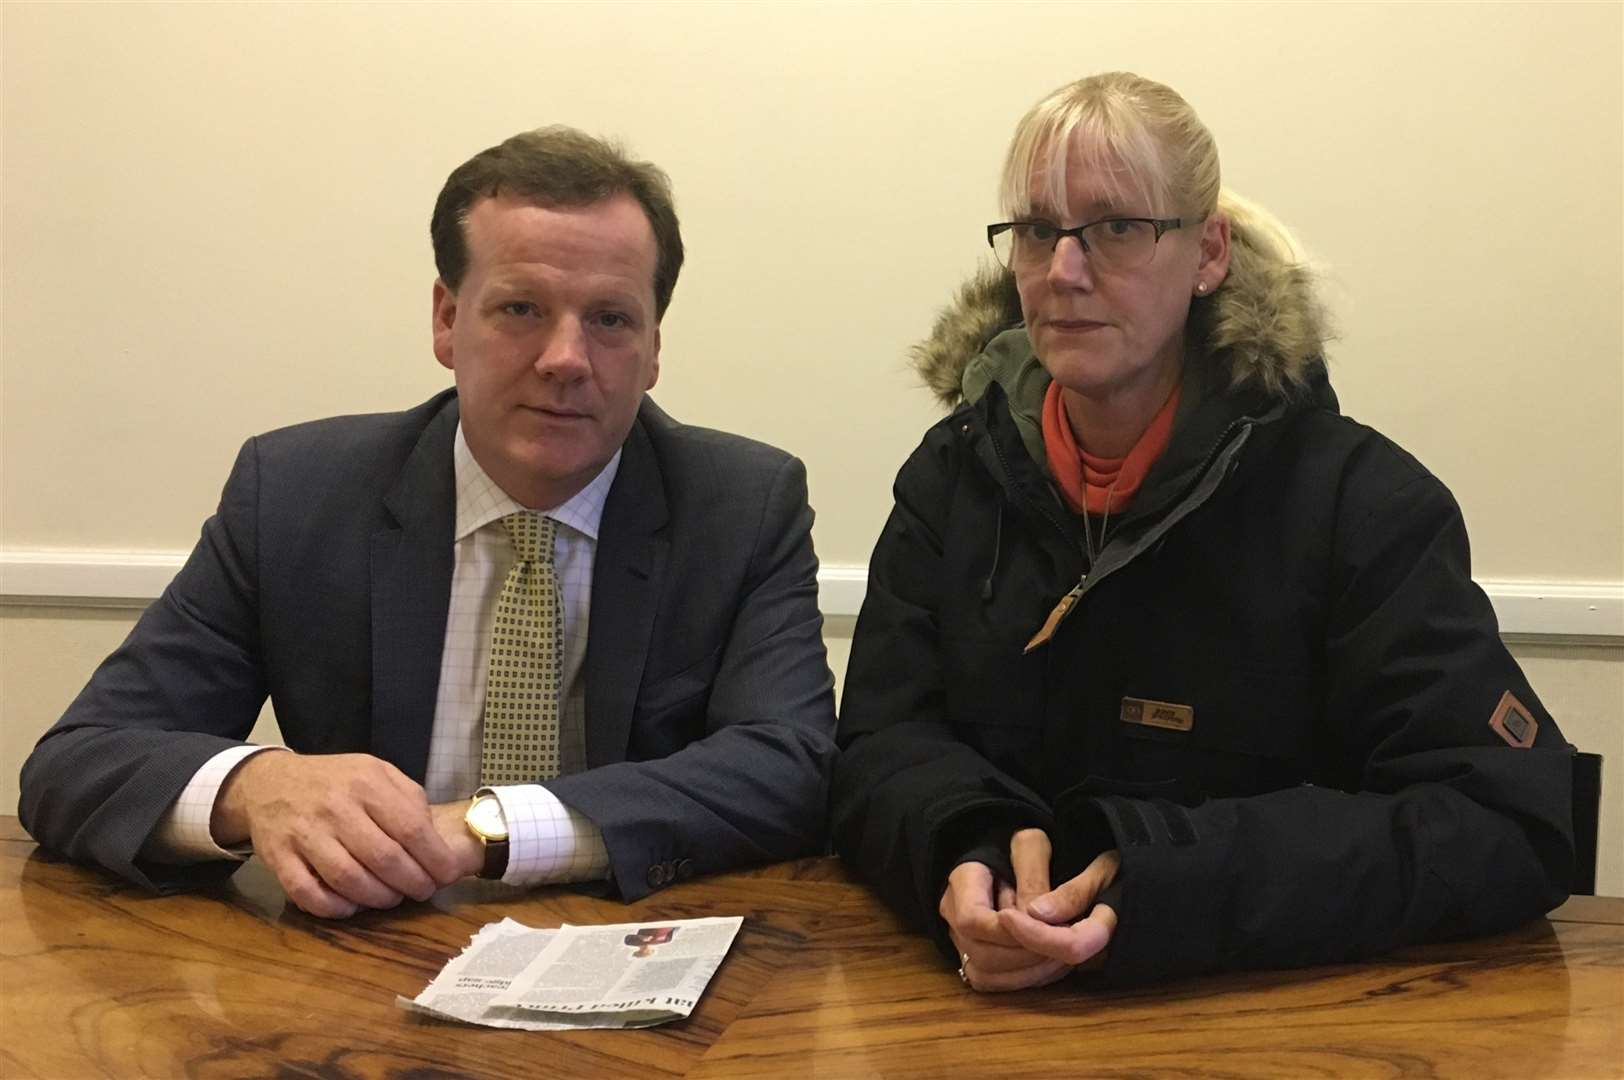 Michelle Parry and Charlie Elphicke:Picture from the office of Charlie Elphicke MP